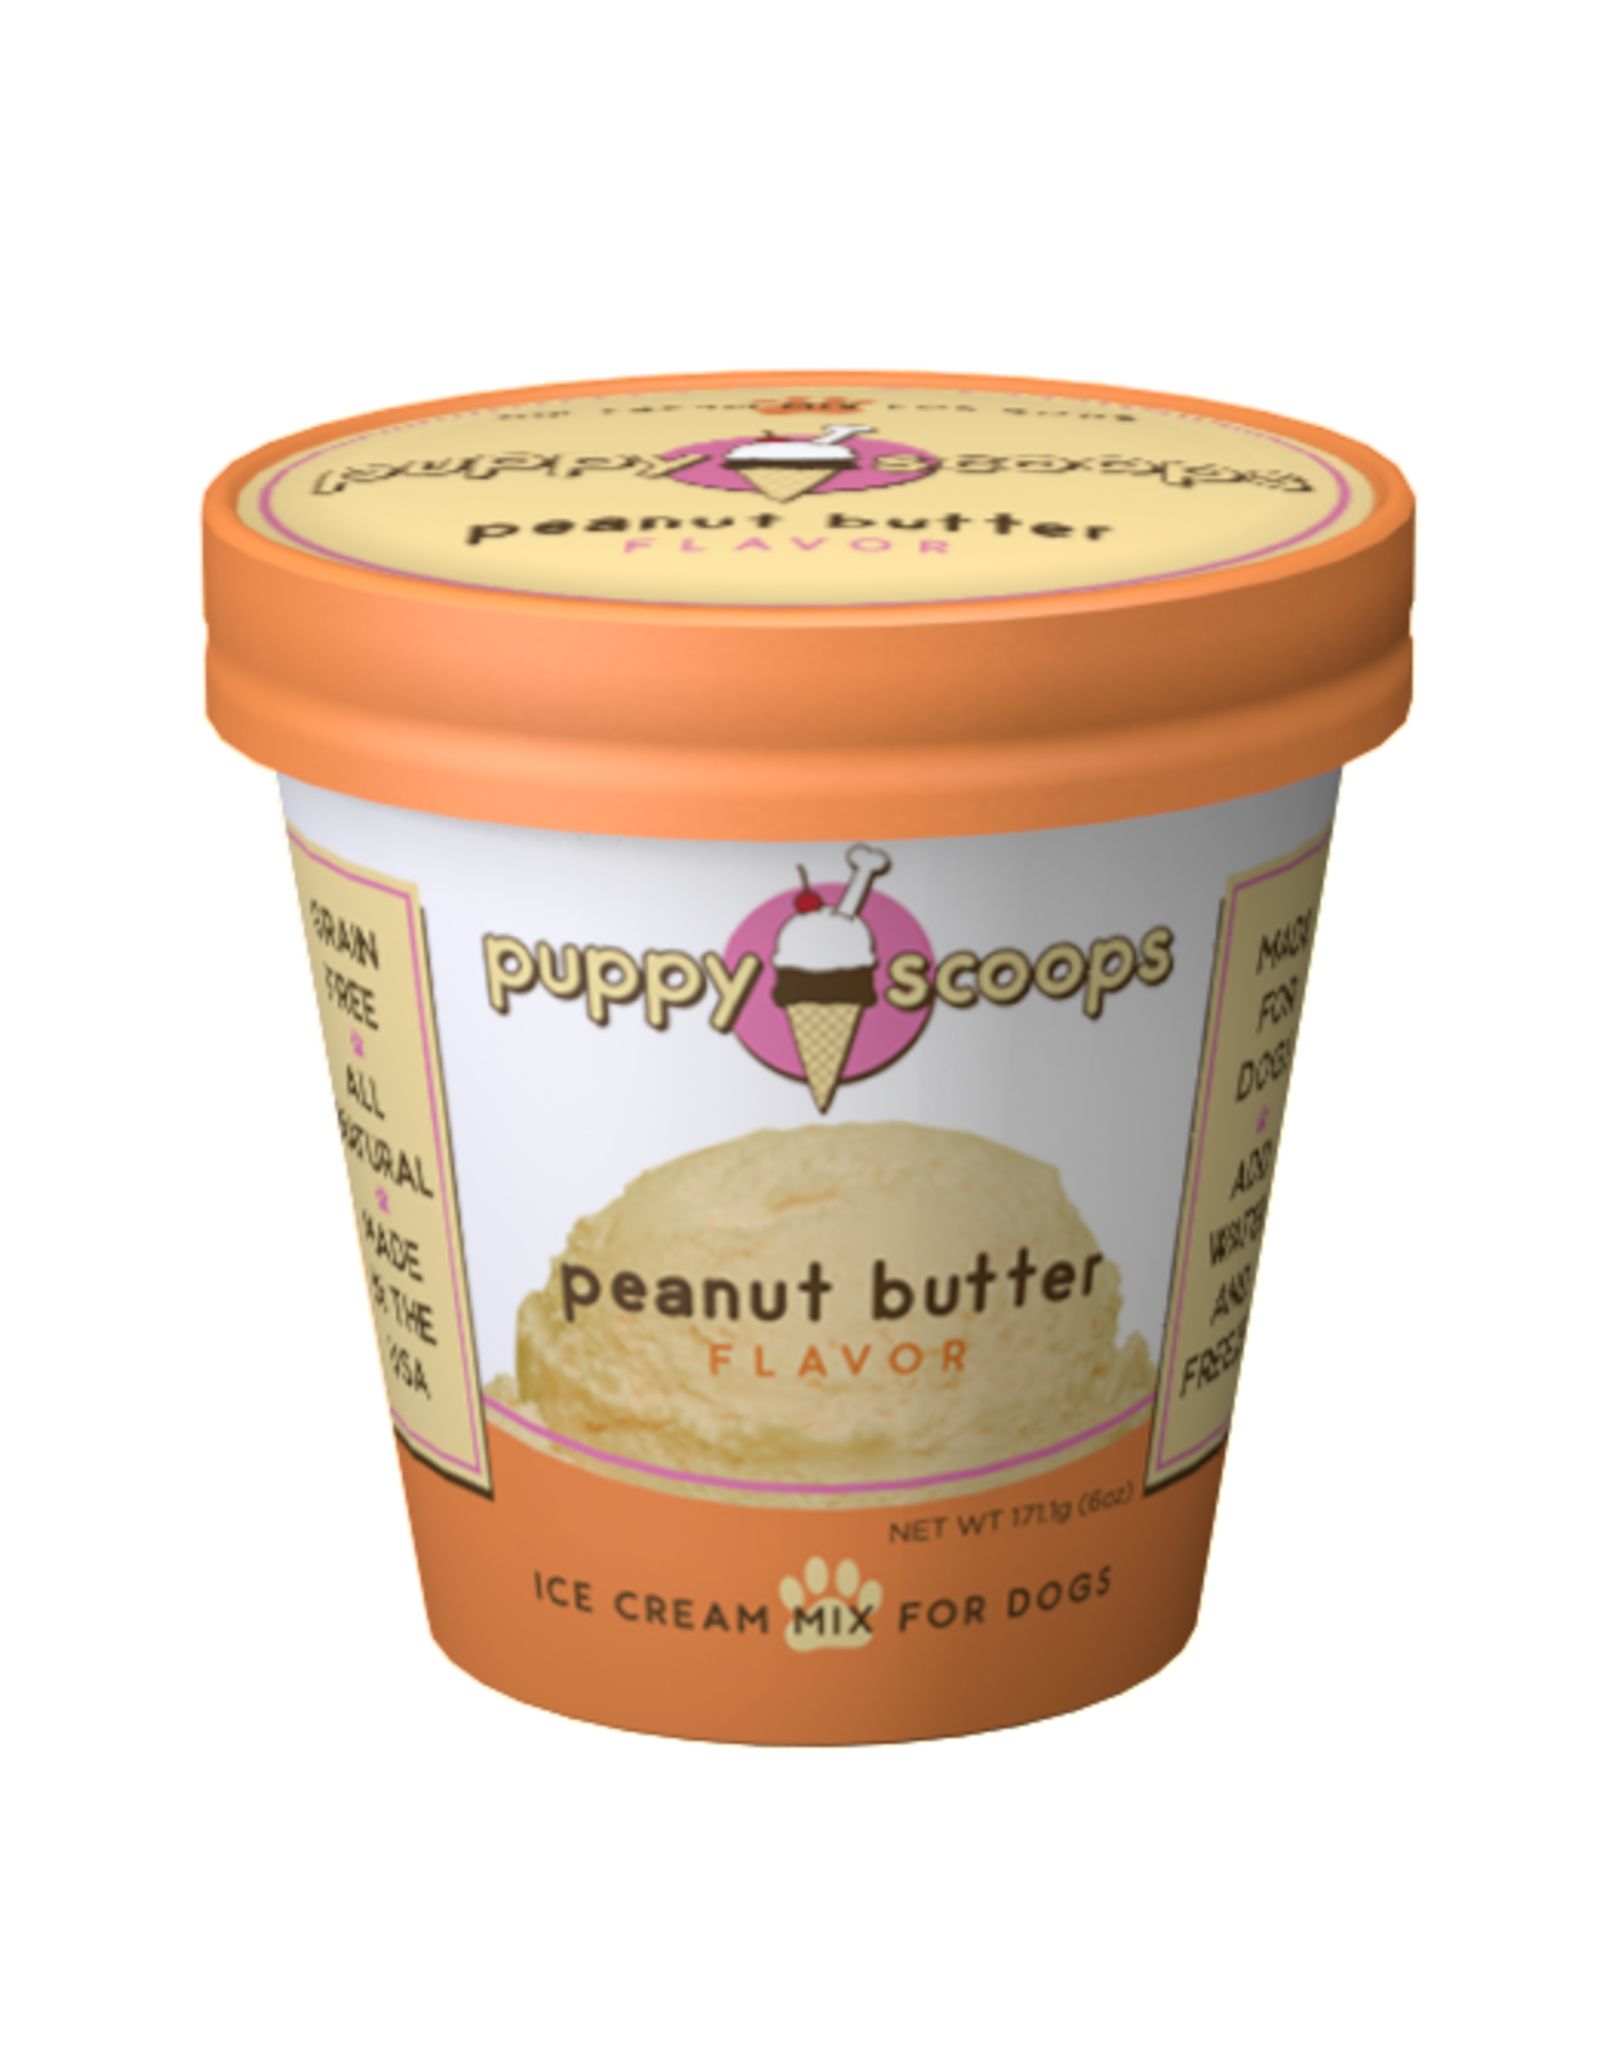 Puppy Scoops Mix Peanut Butter